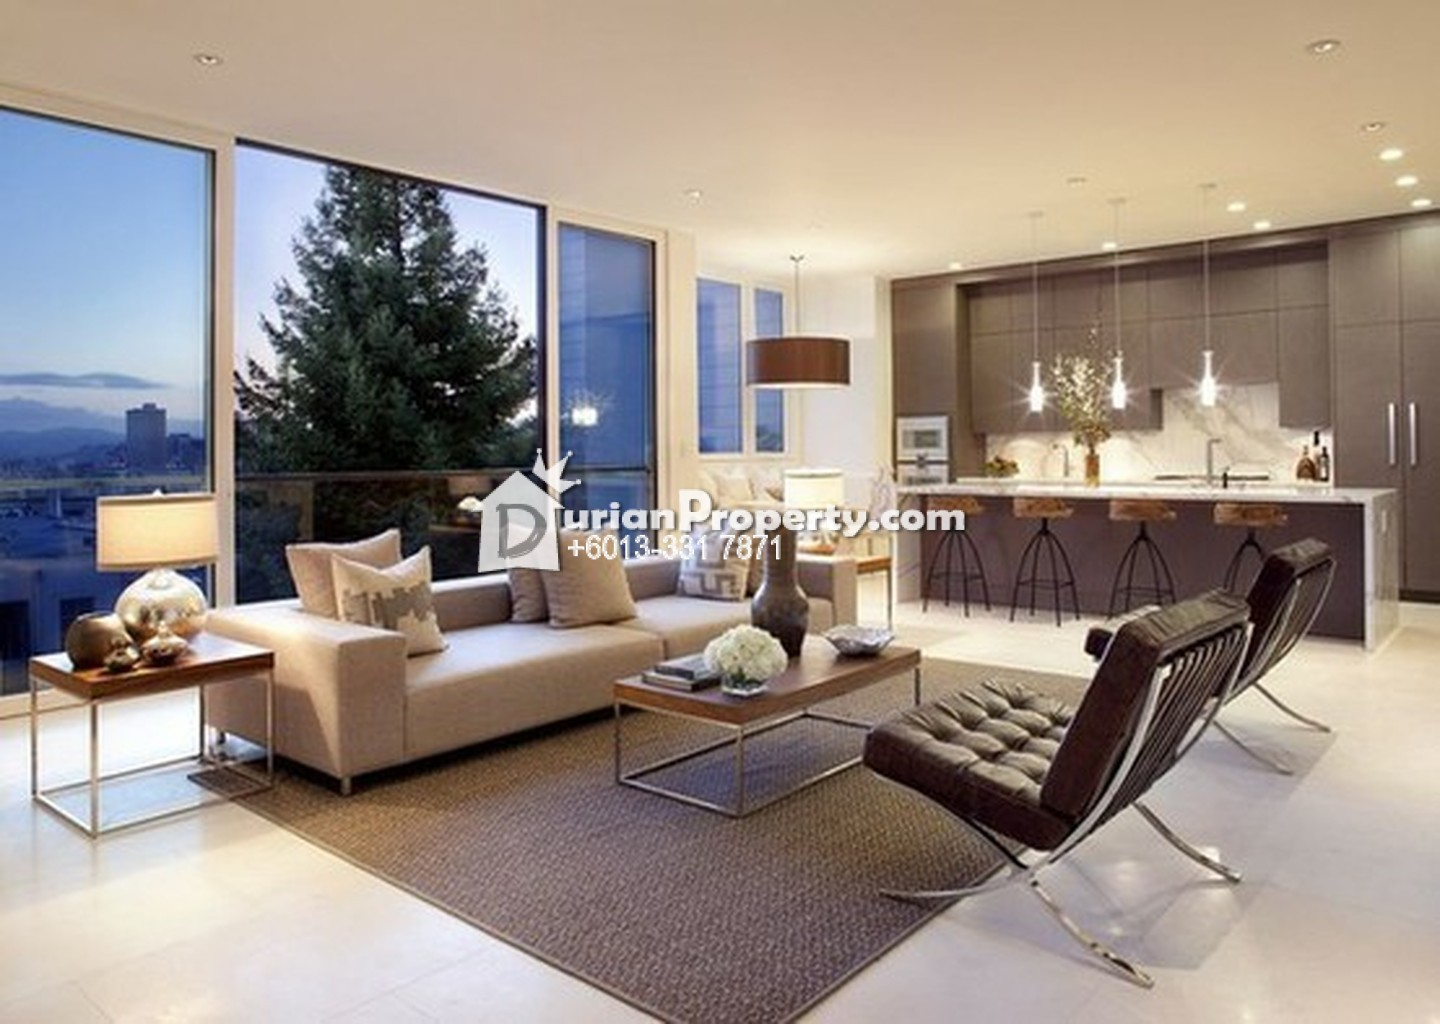 serviced residence for sale at taman sentul utama sentul for rm serviced residence for sale at taman sentul utama sentul